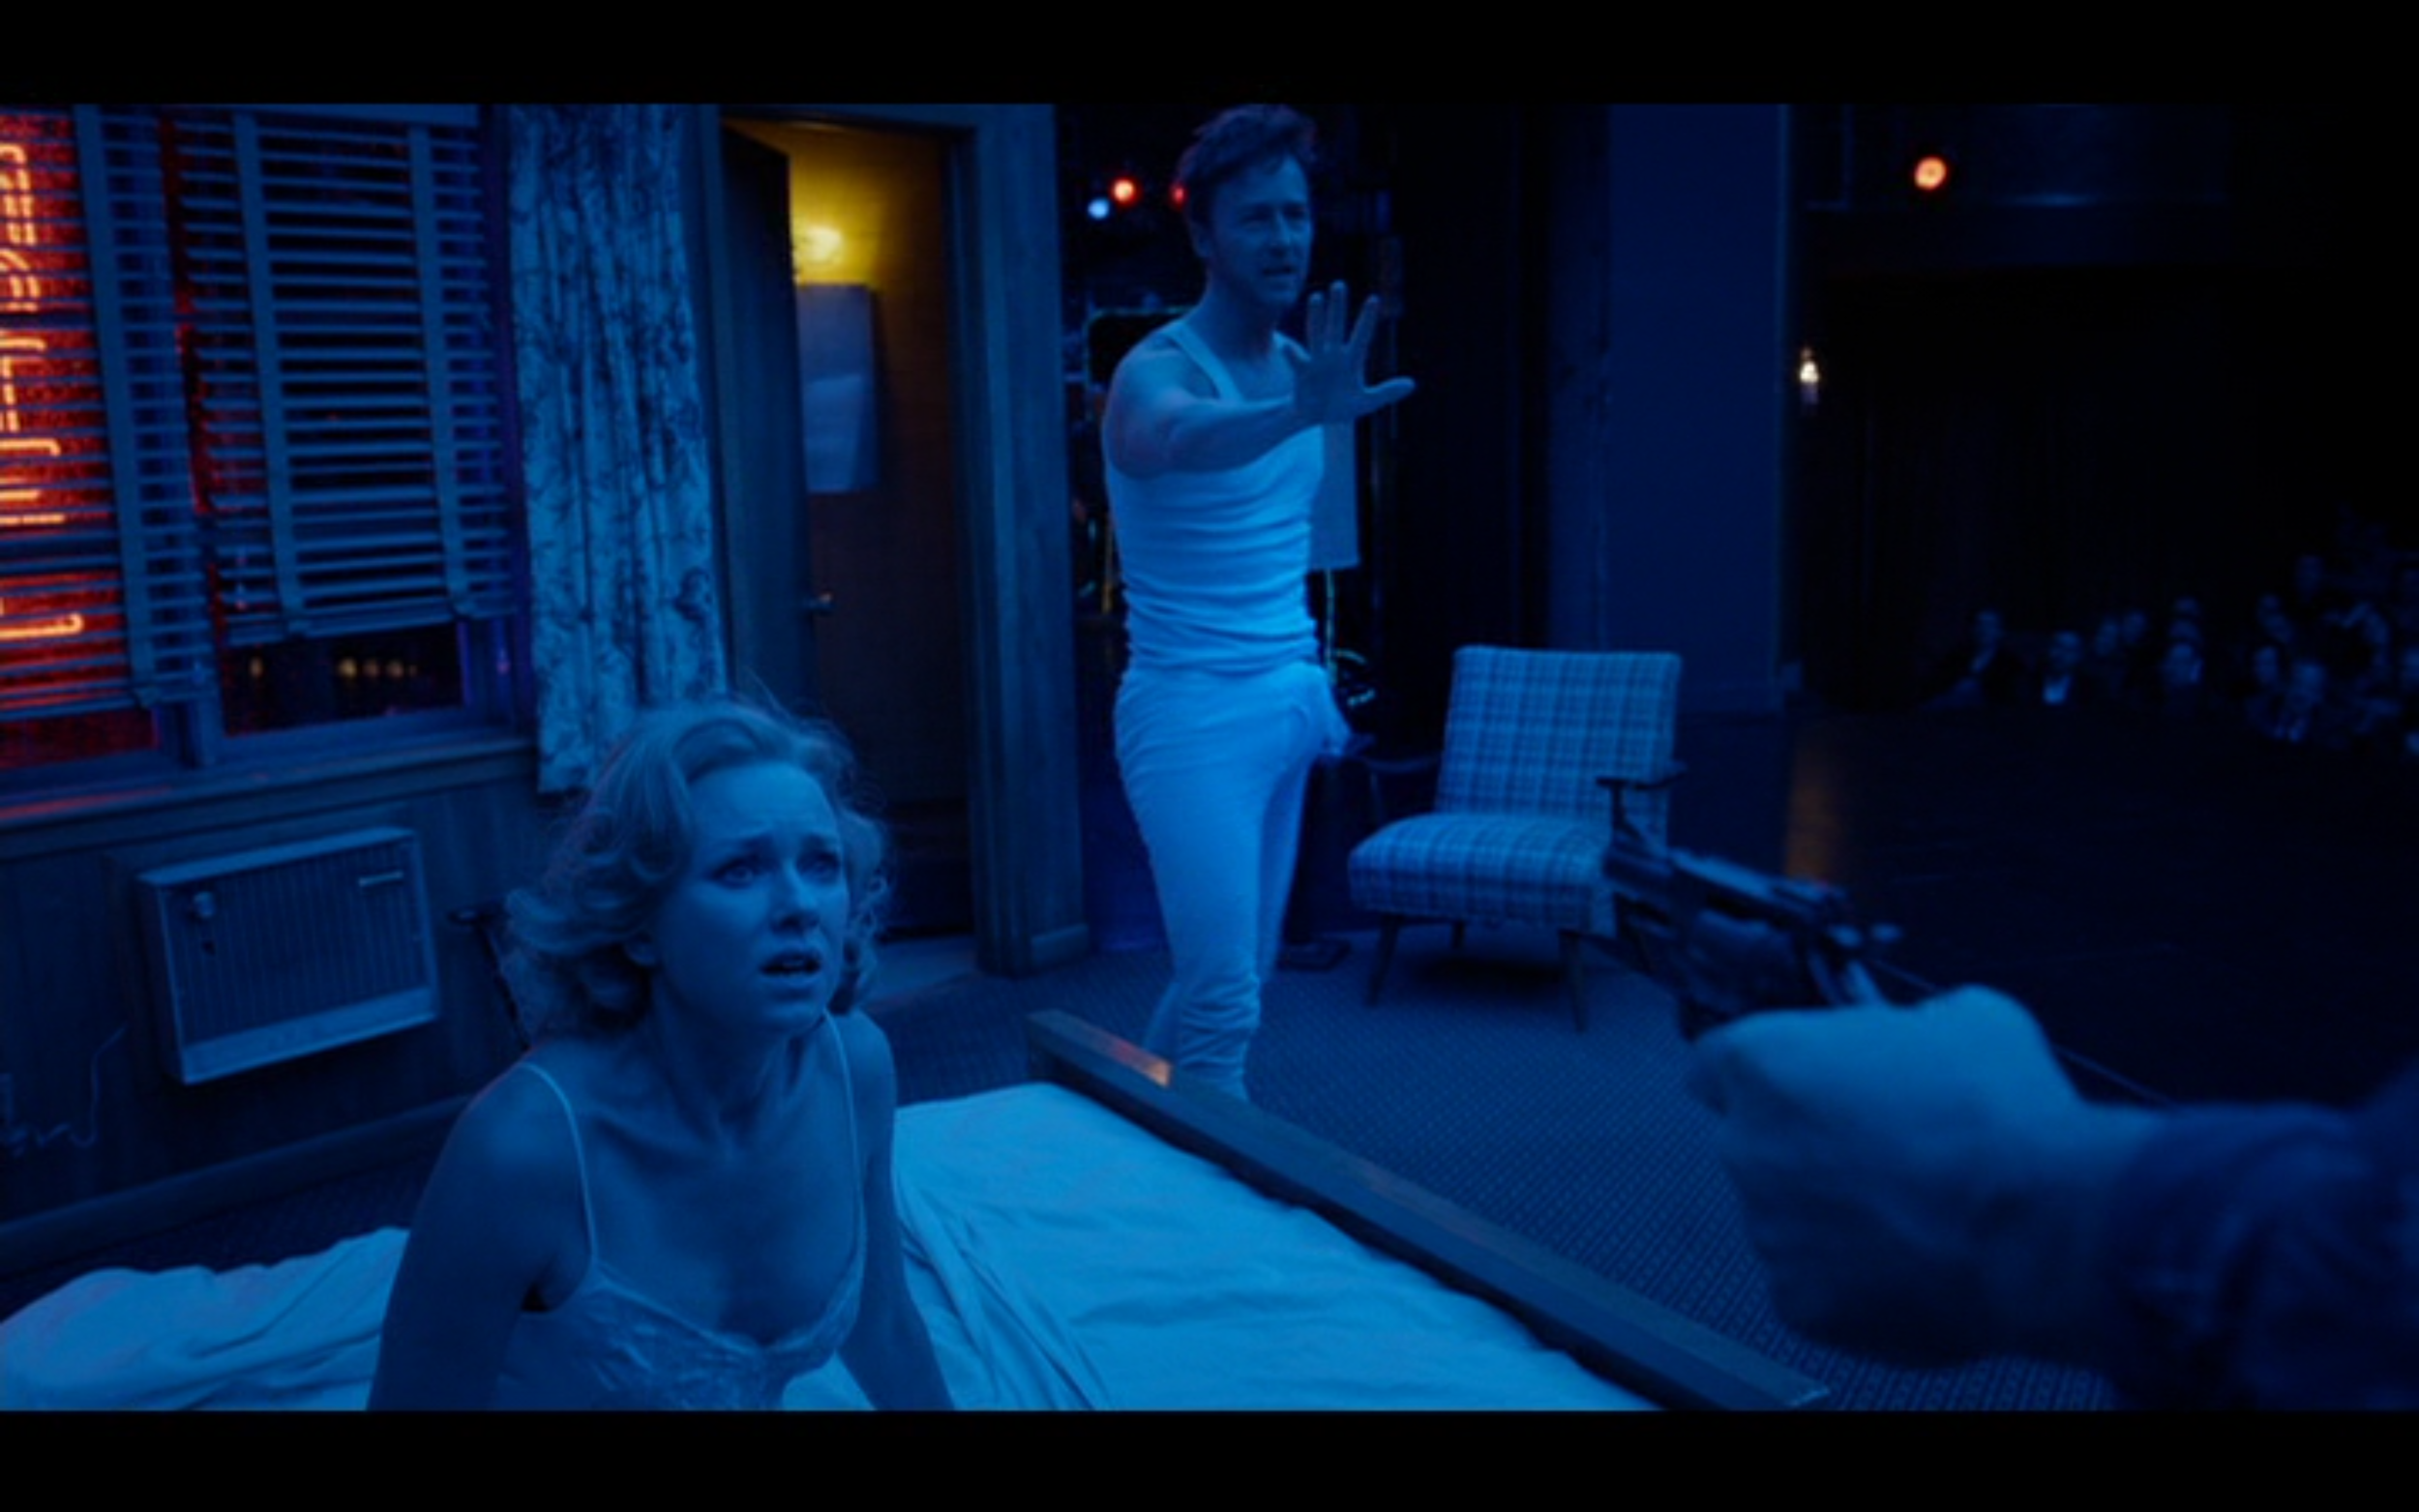 "Figure 4: Mike Shiner has a visible erection on stage during the Raymond Carver adaptation in  Birdman, or (The Unexpected Virtue of Ignorance ) (Iñárritu 2014). His ex grumbles, ""You can't get it up in six months and now you want to fuck me in front of 800 strangers?!"" as they take their bows in front of an applauding and cheering audience. Mike, the pretentious Broadway actor to the last, explains himself: ""I need it to feel real, okay? I need that intensity. I was in the moment."" Credit: screen capture (New Regency Pictures/M Productions/Le Gribsi)."